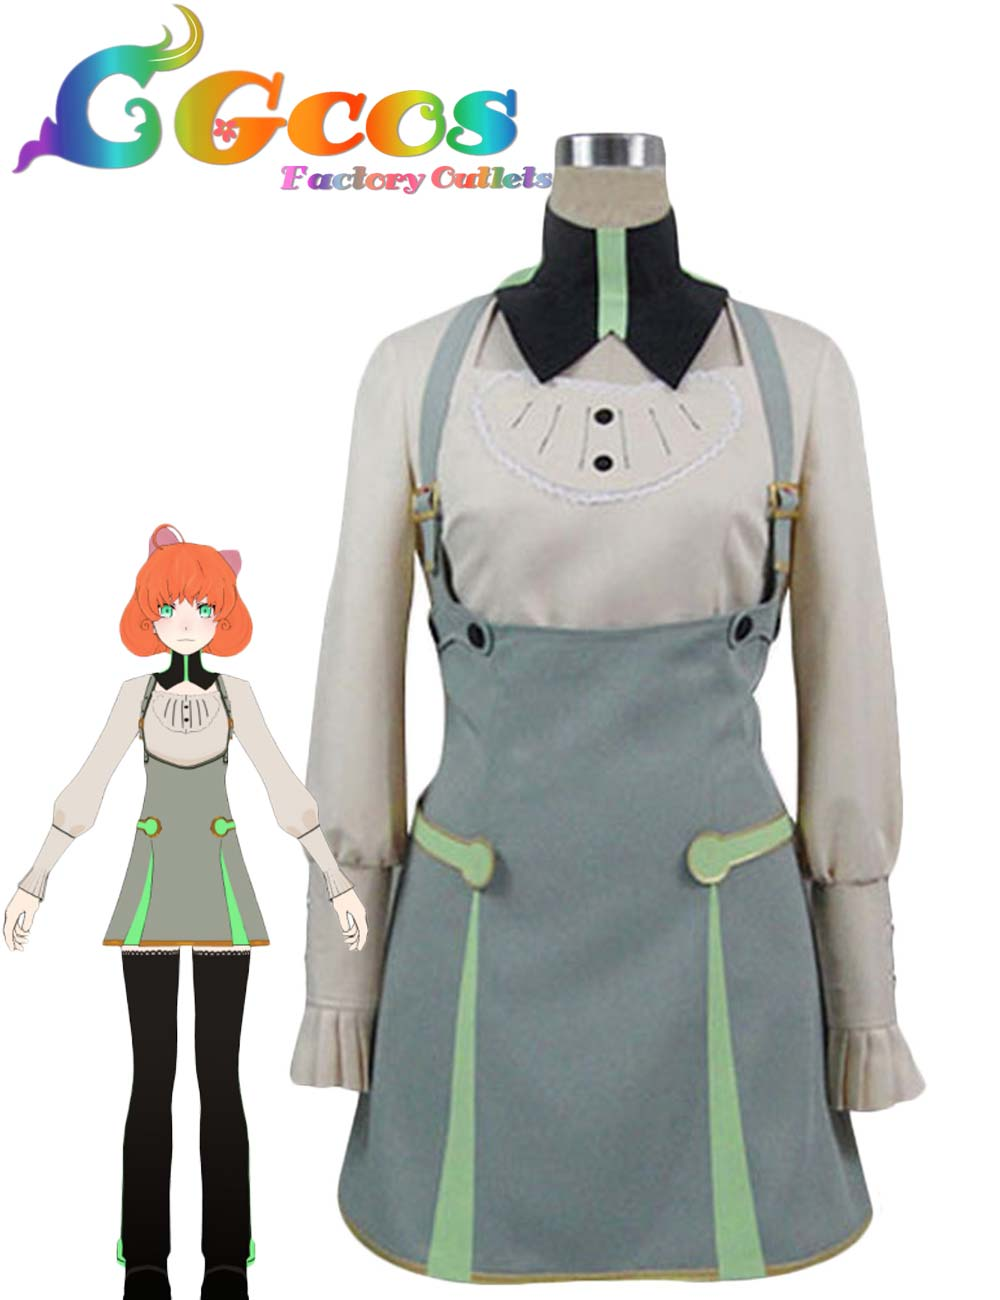 CGCOS Free Shipping Cosplay Costume RWBY Penny New in Stock Retail /Wholesale Halloween Christmas Uniform cgcos free shipping cosplay costume hetalia axis powers scotland uniform new in stock halloween christmas party